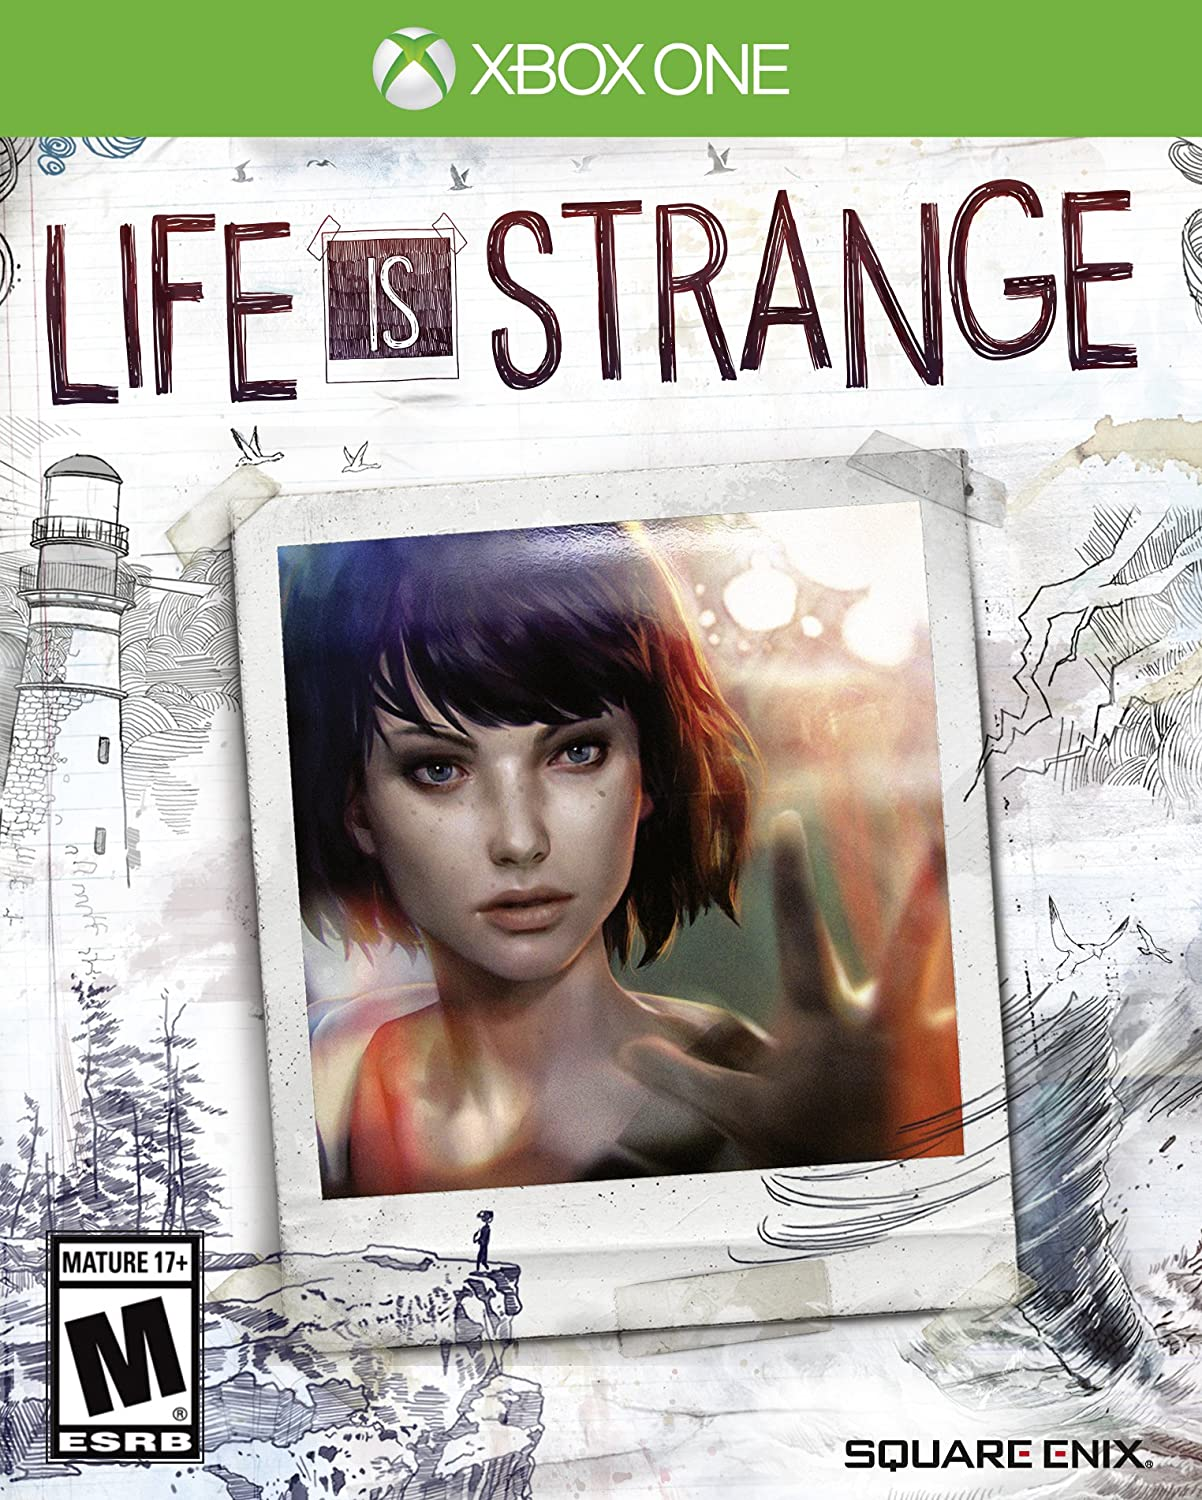 Square Enix Life is Strange Standard Edition, Xbox One - Juego (Xbox One, Xbox One, Acción / Aventura, DONTNOD ENTERTAINMENT, January 19, 2016, M (Maduro), ENG): Amazon.es: Videojuegos